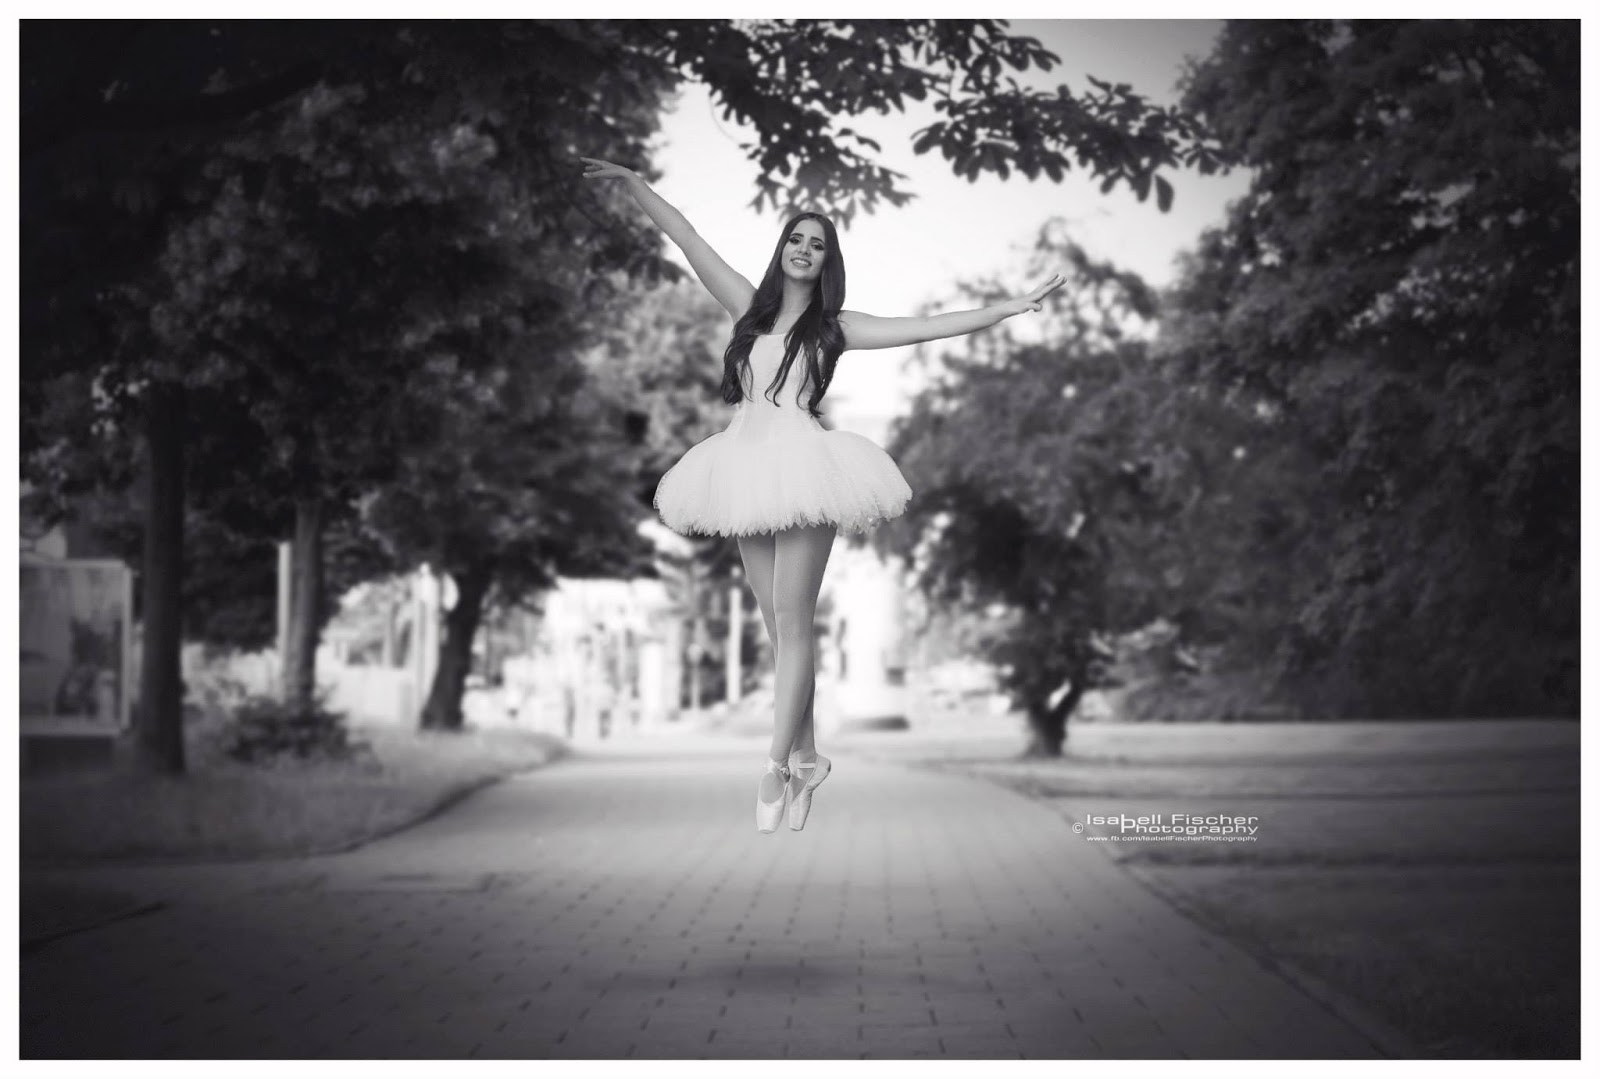 Ballerina levitation photoshoot